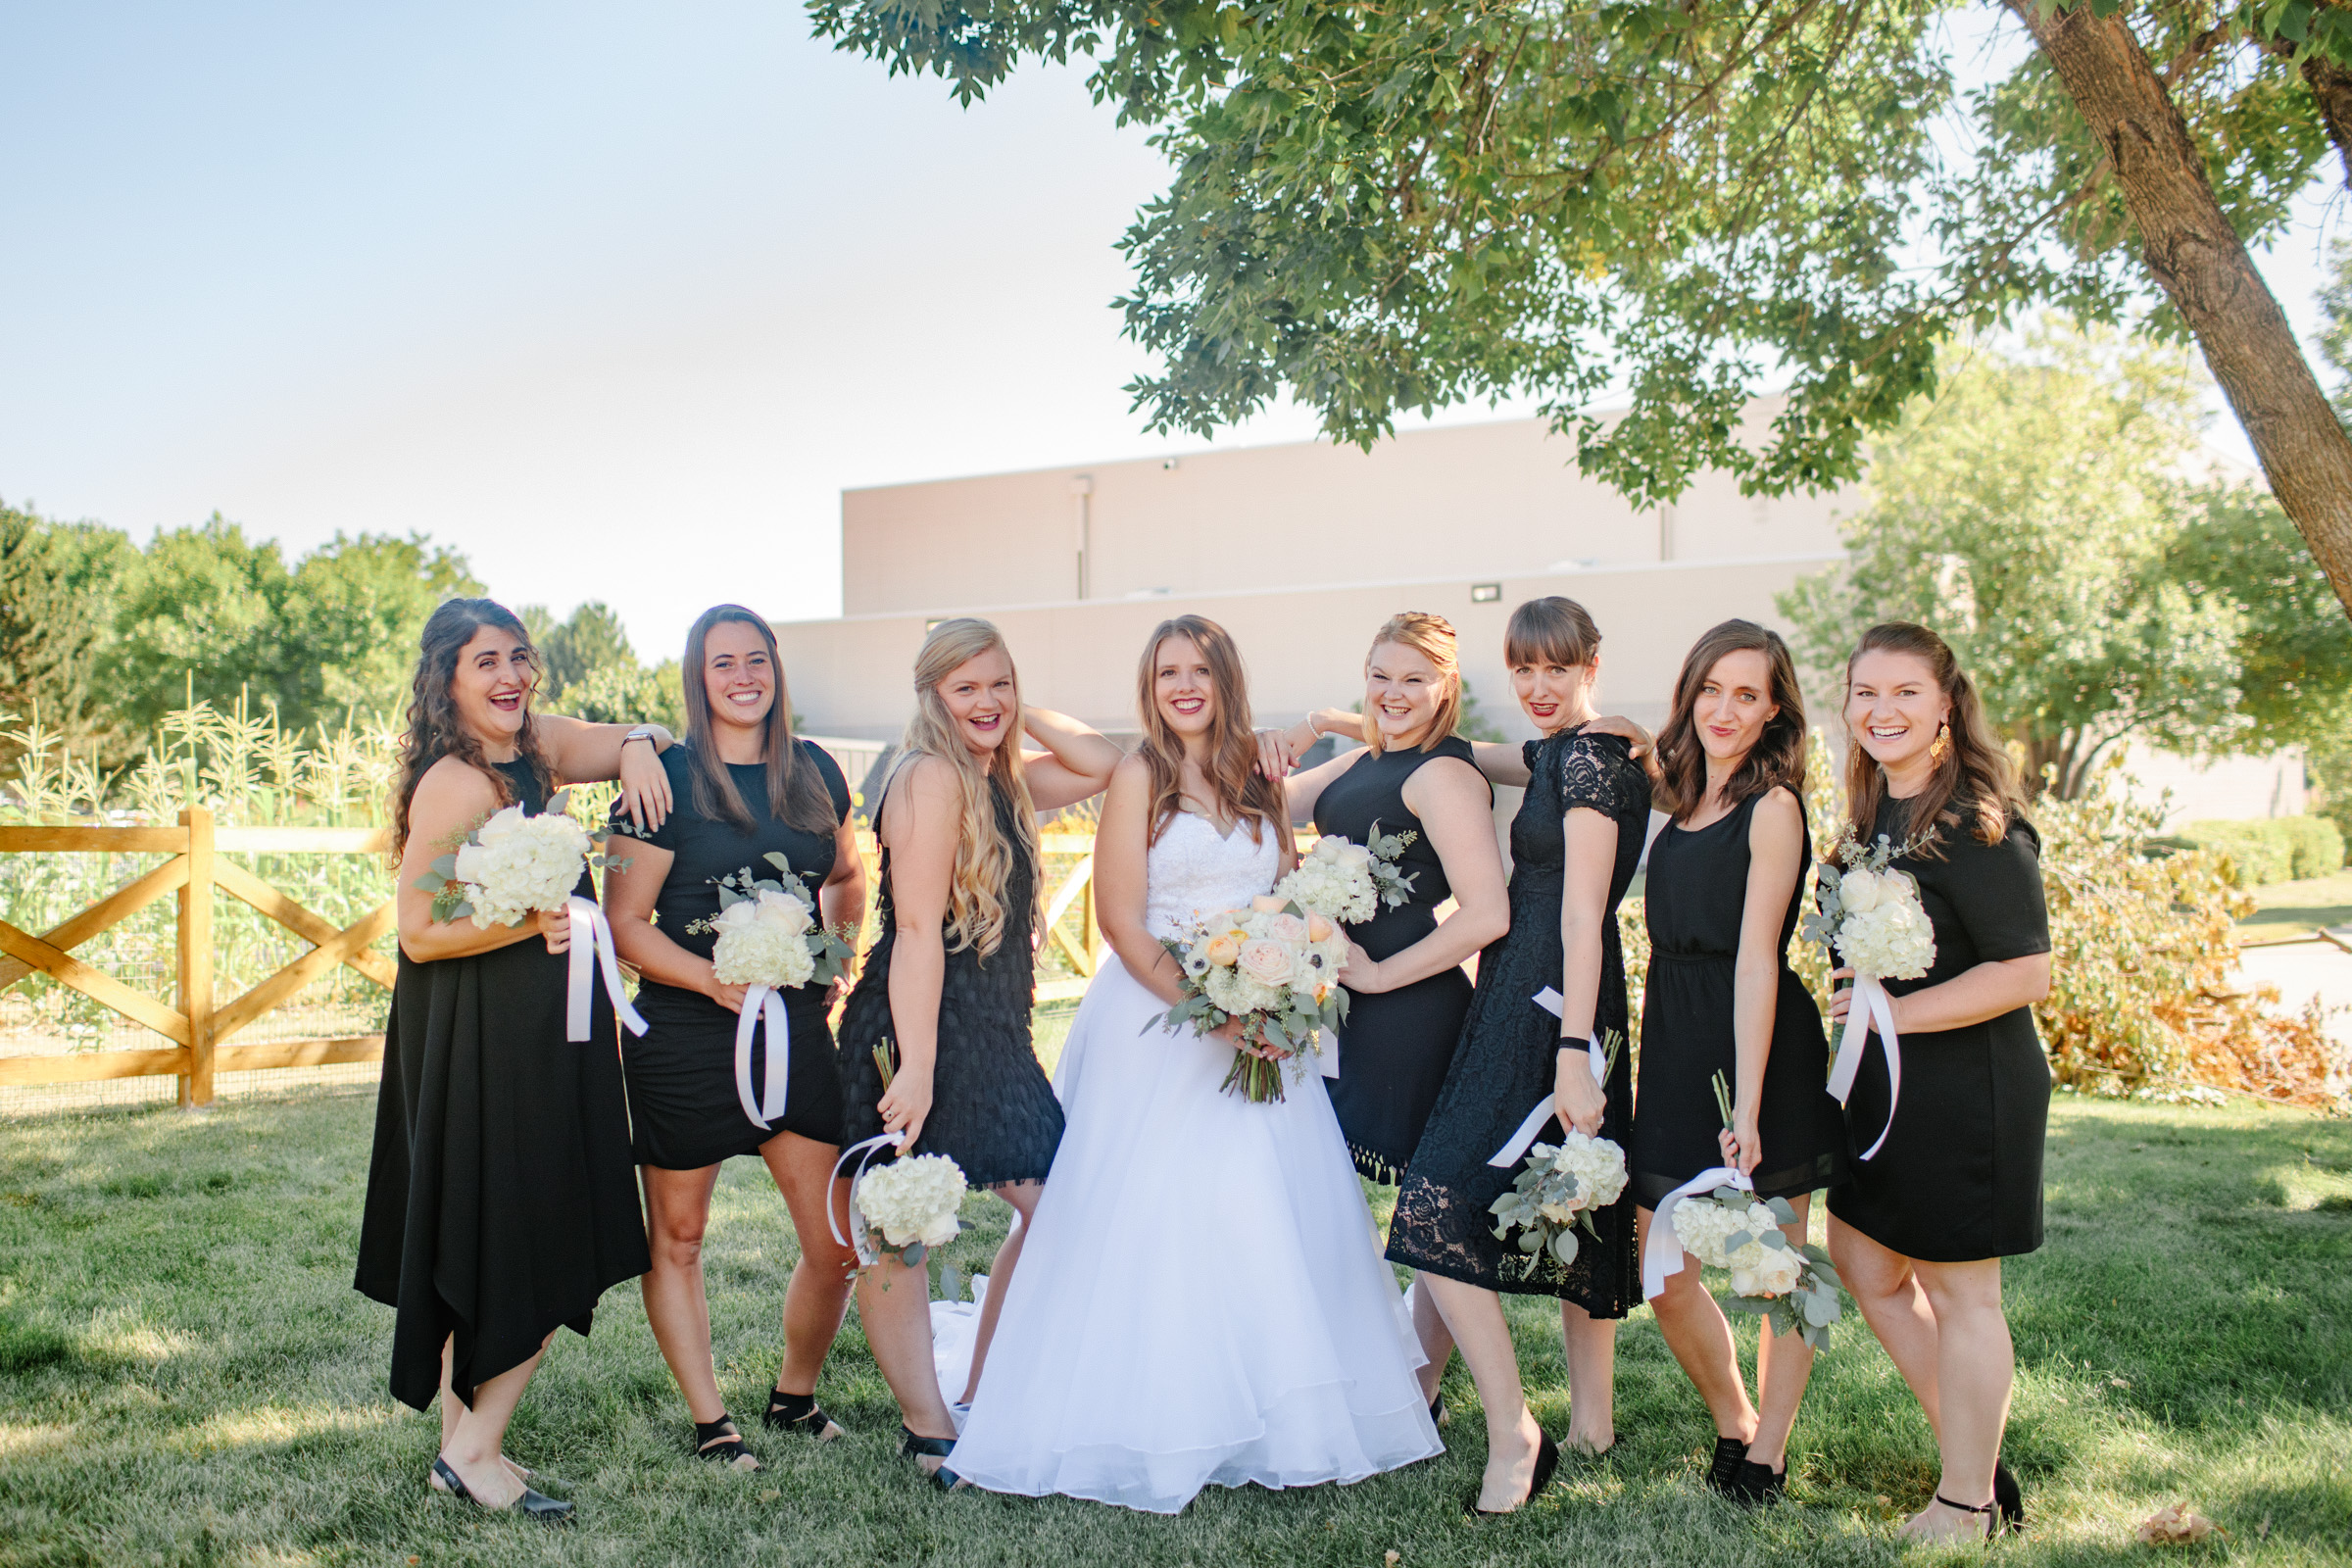 fort-collins-wedding-photographers-57.jpg